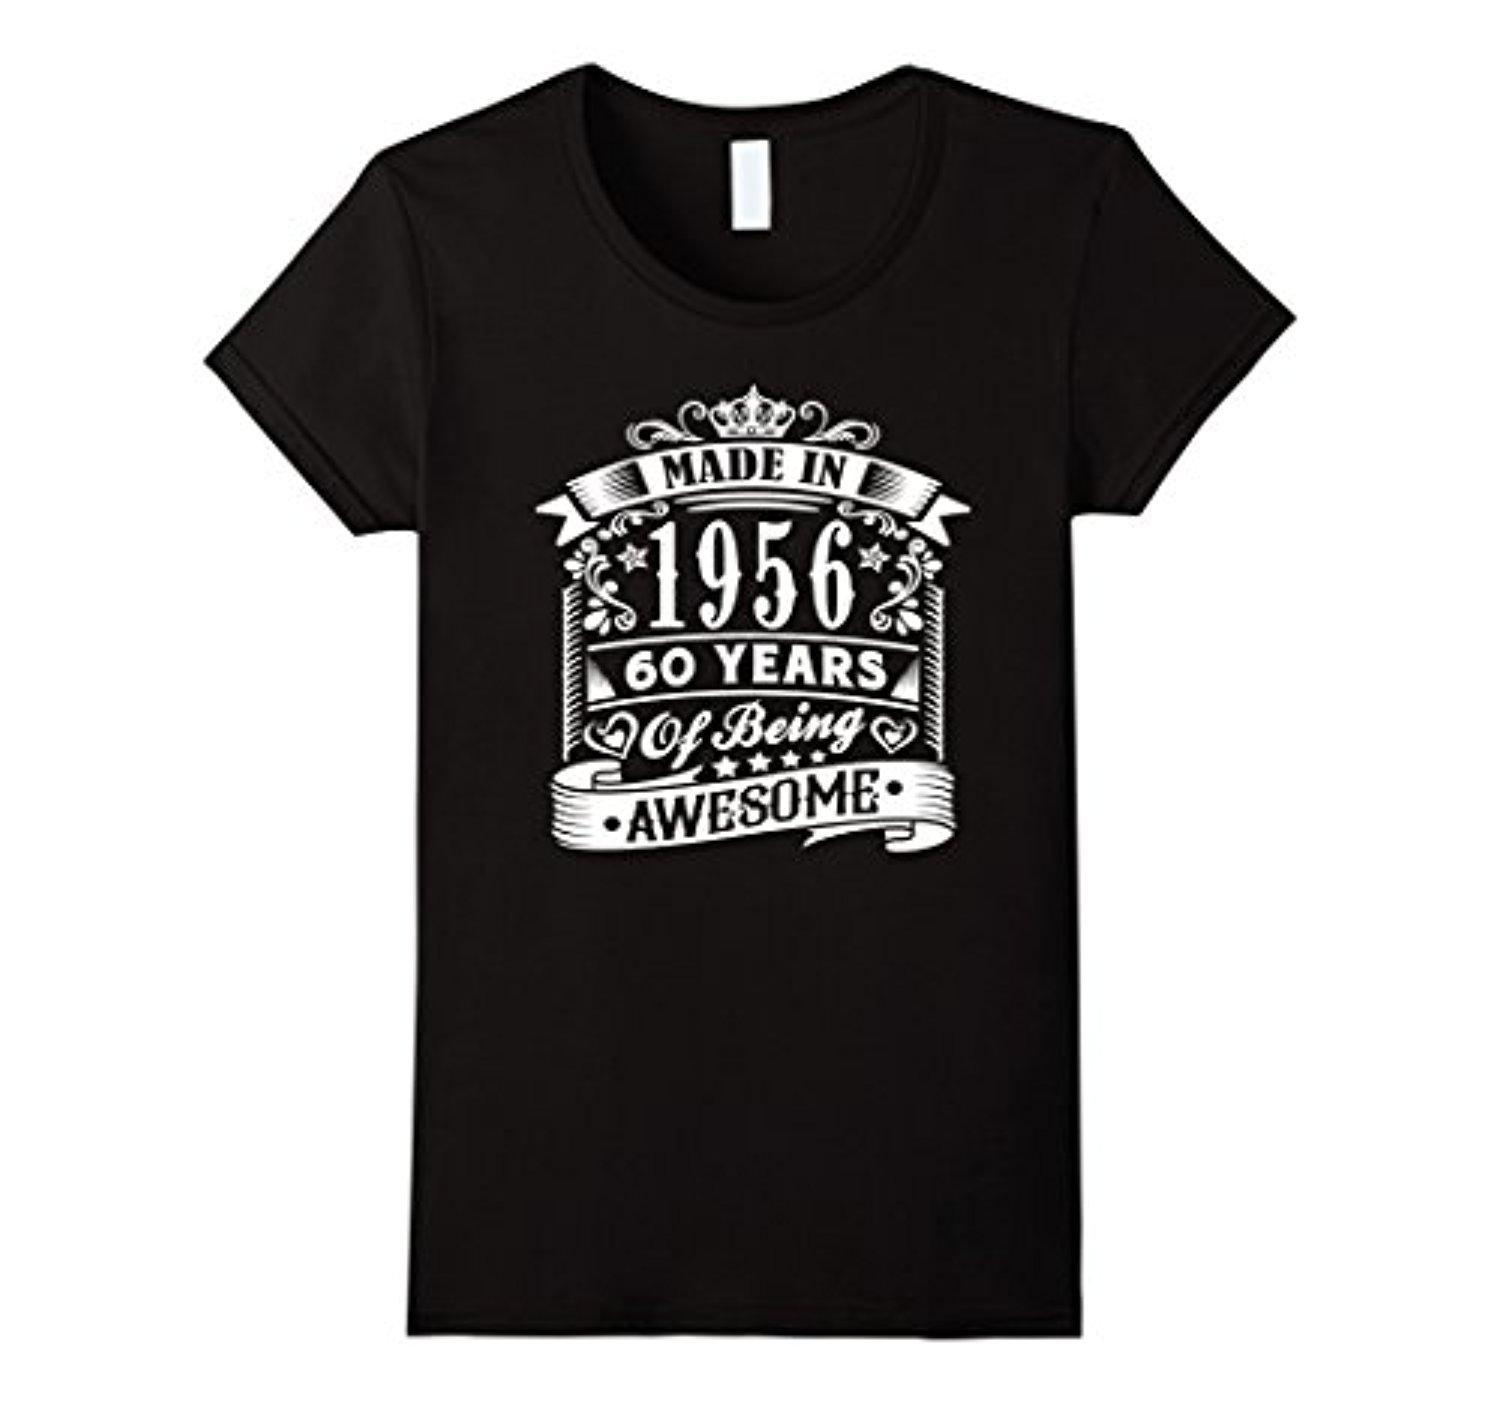 Online Store Womens 60th Birthday Gift Idea 60 Year Old Boy Girl Shirt 1956 Xl Black